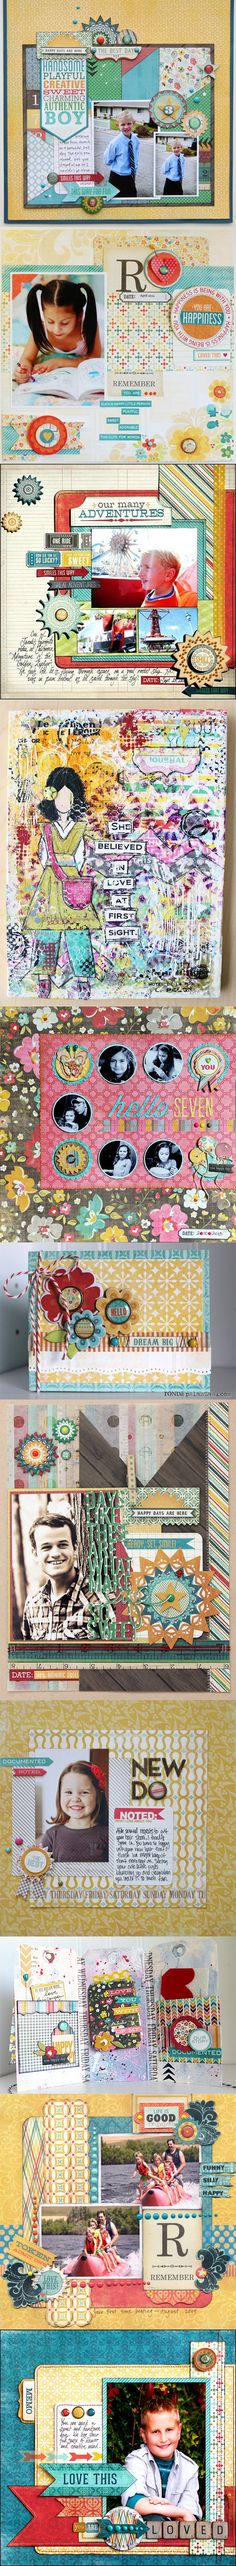 Scrapbook layouts Get all your My Minds eye supplies at allscrapbooksteals.com